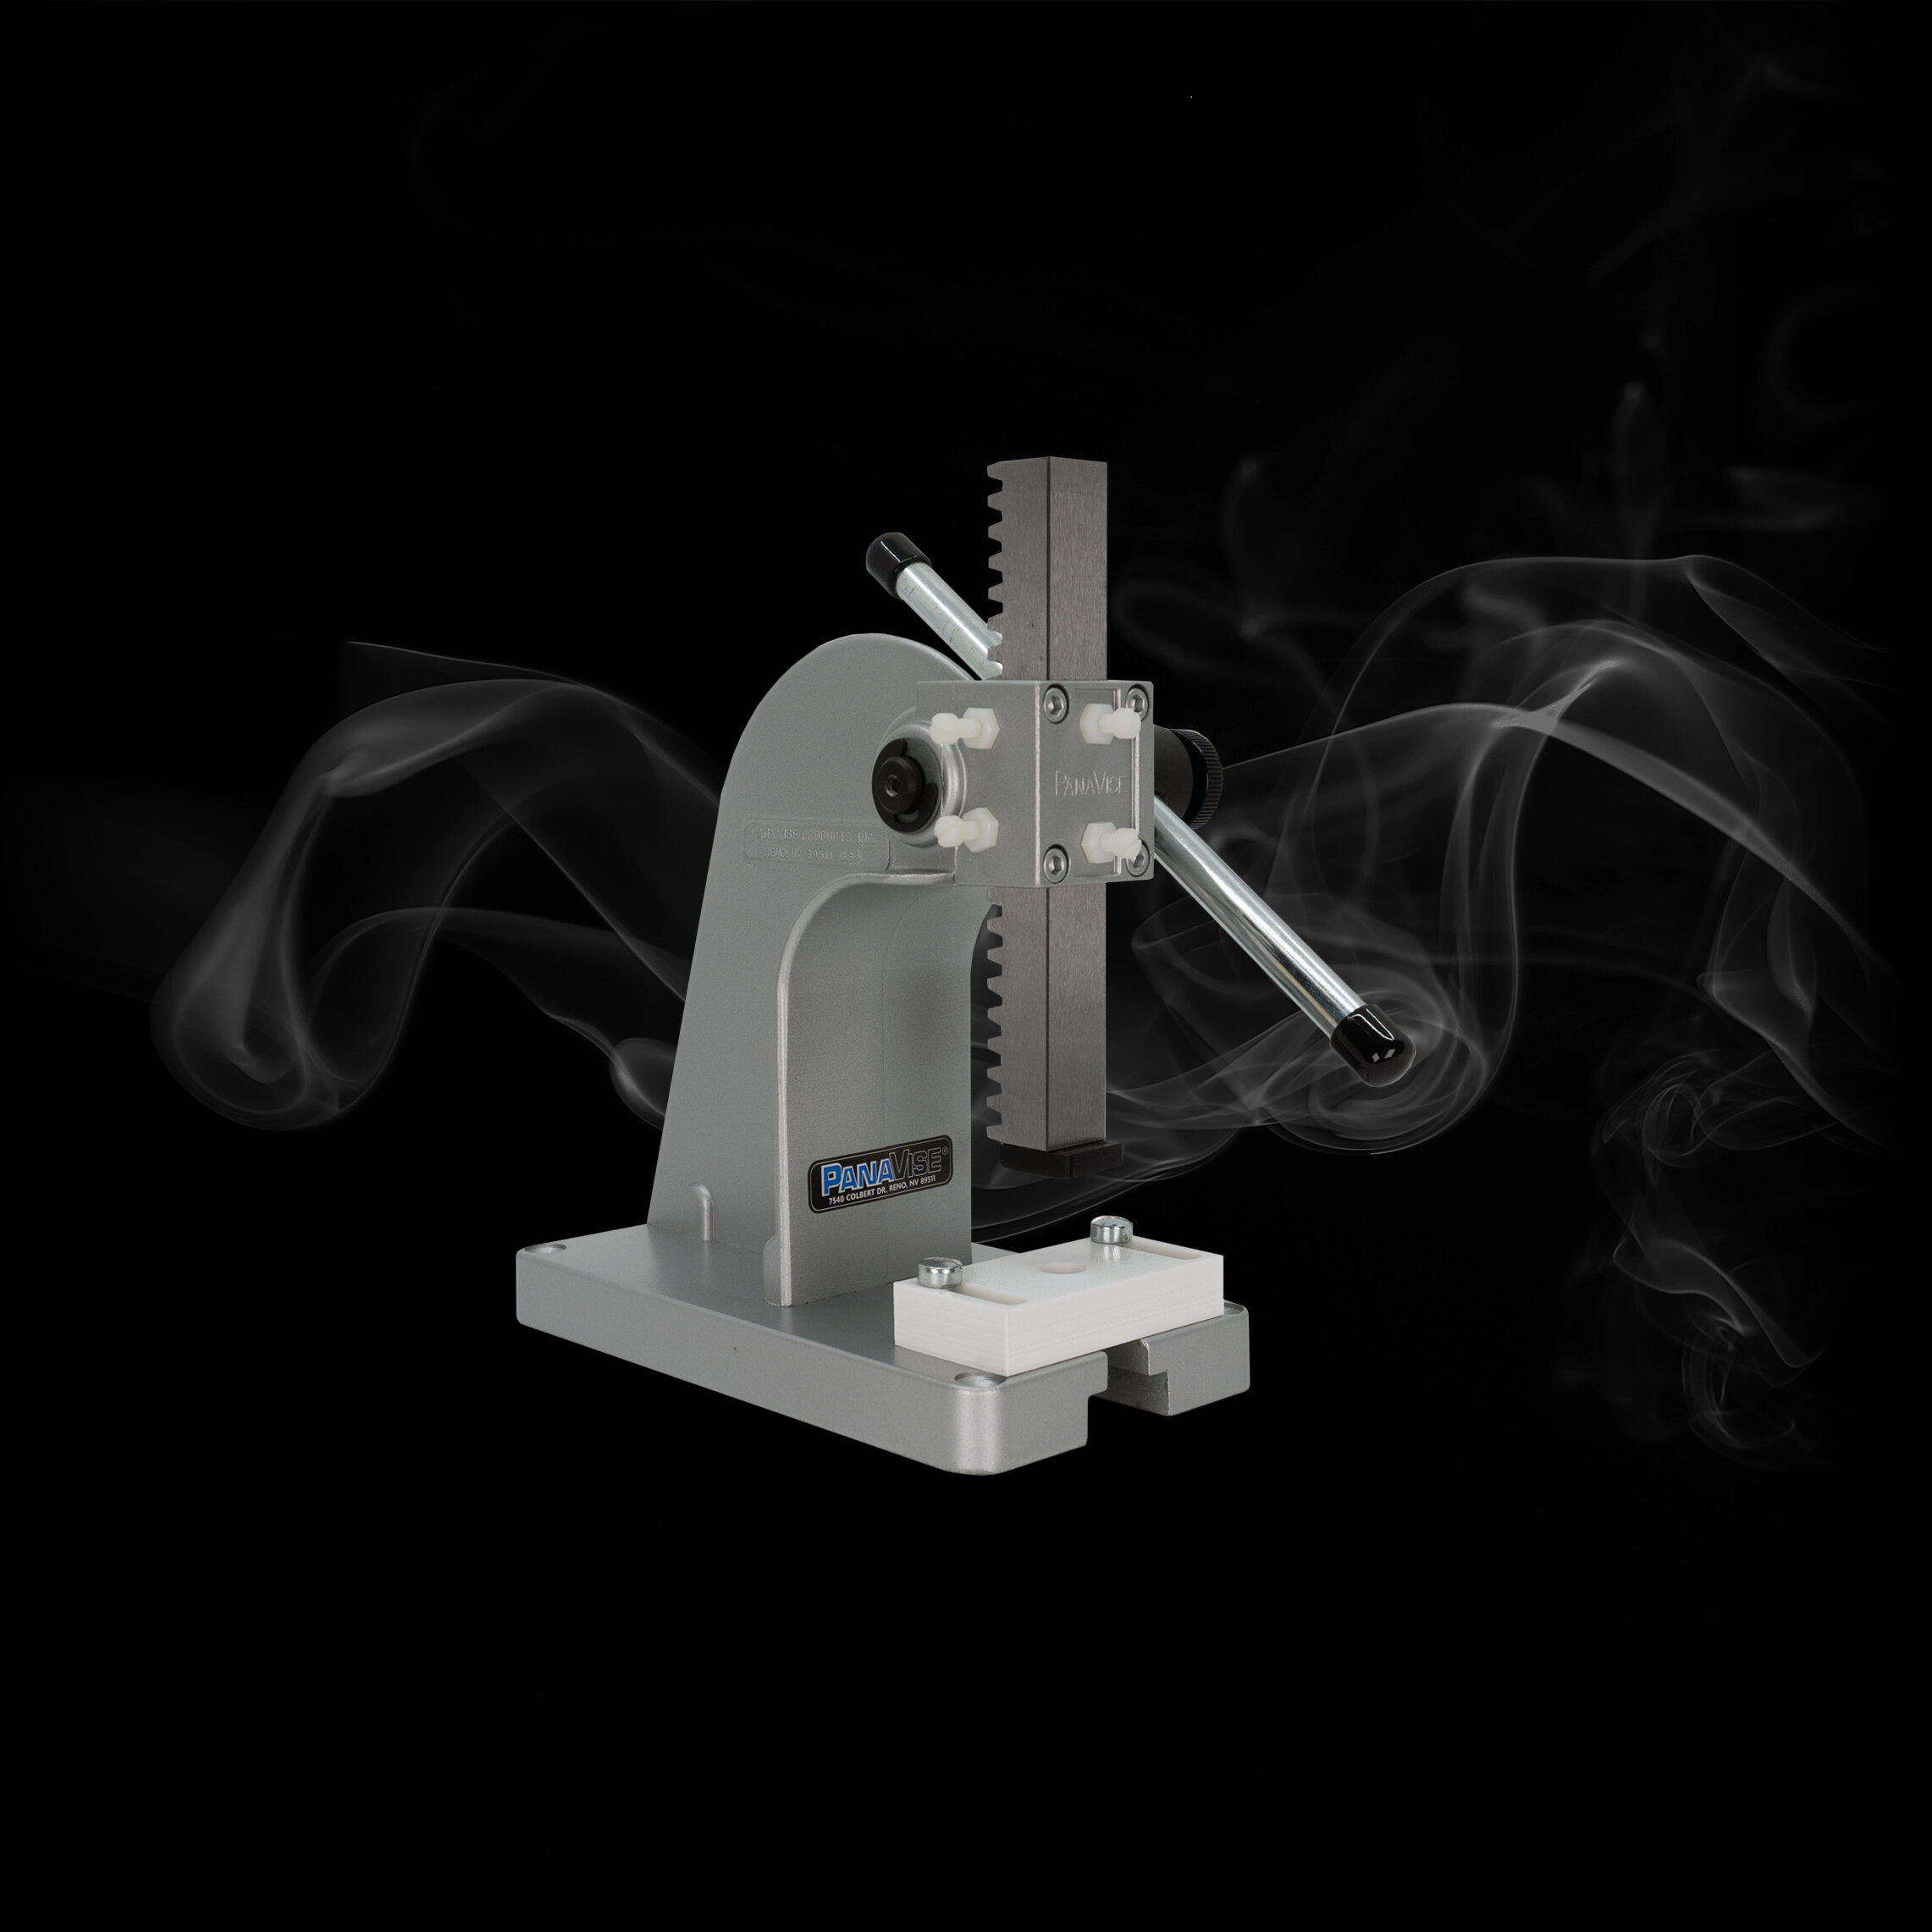 arbor press - Features:Adjustable HandleCustom Made C6 Jig to fit 1.0mL or 0.5mLCan be mounted to table, or used standaloneTension Adjustments with 4 screws for precision